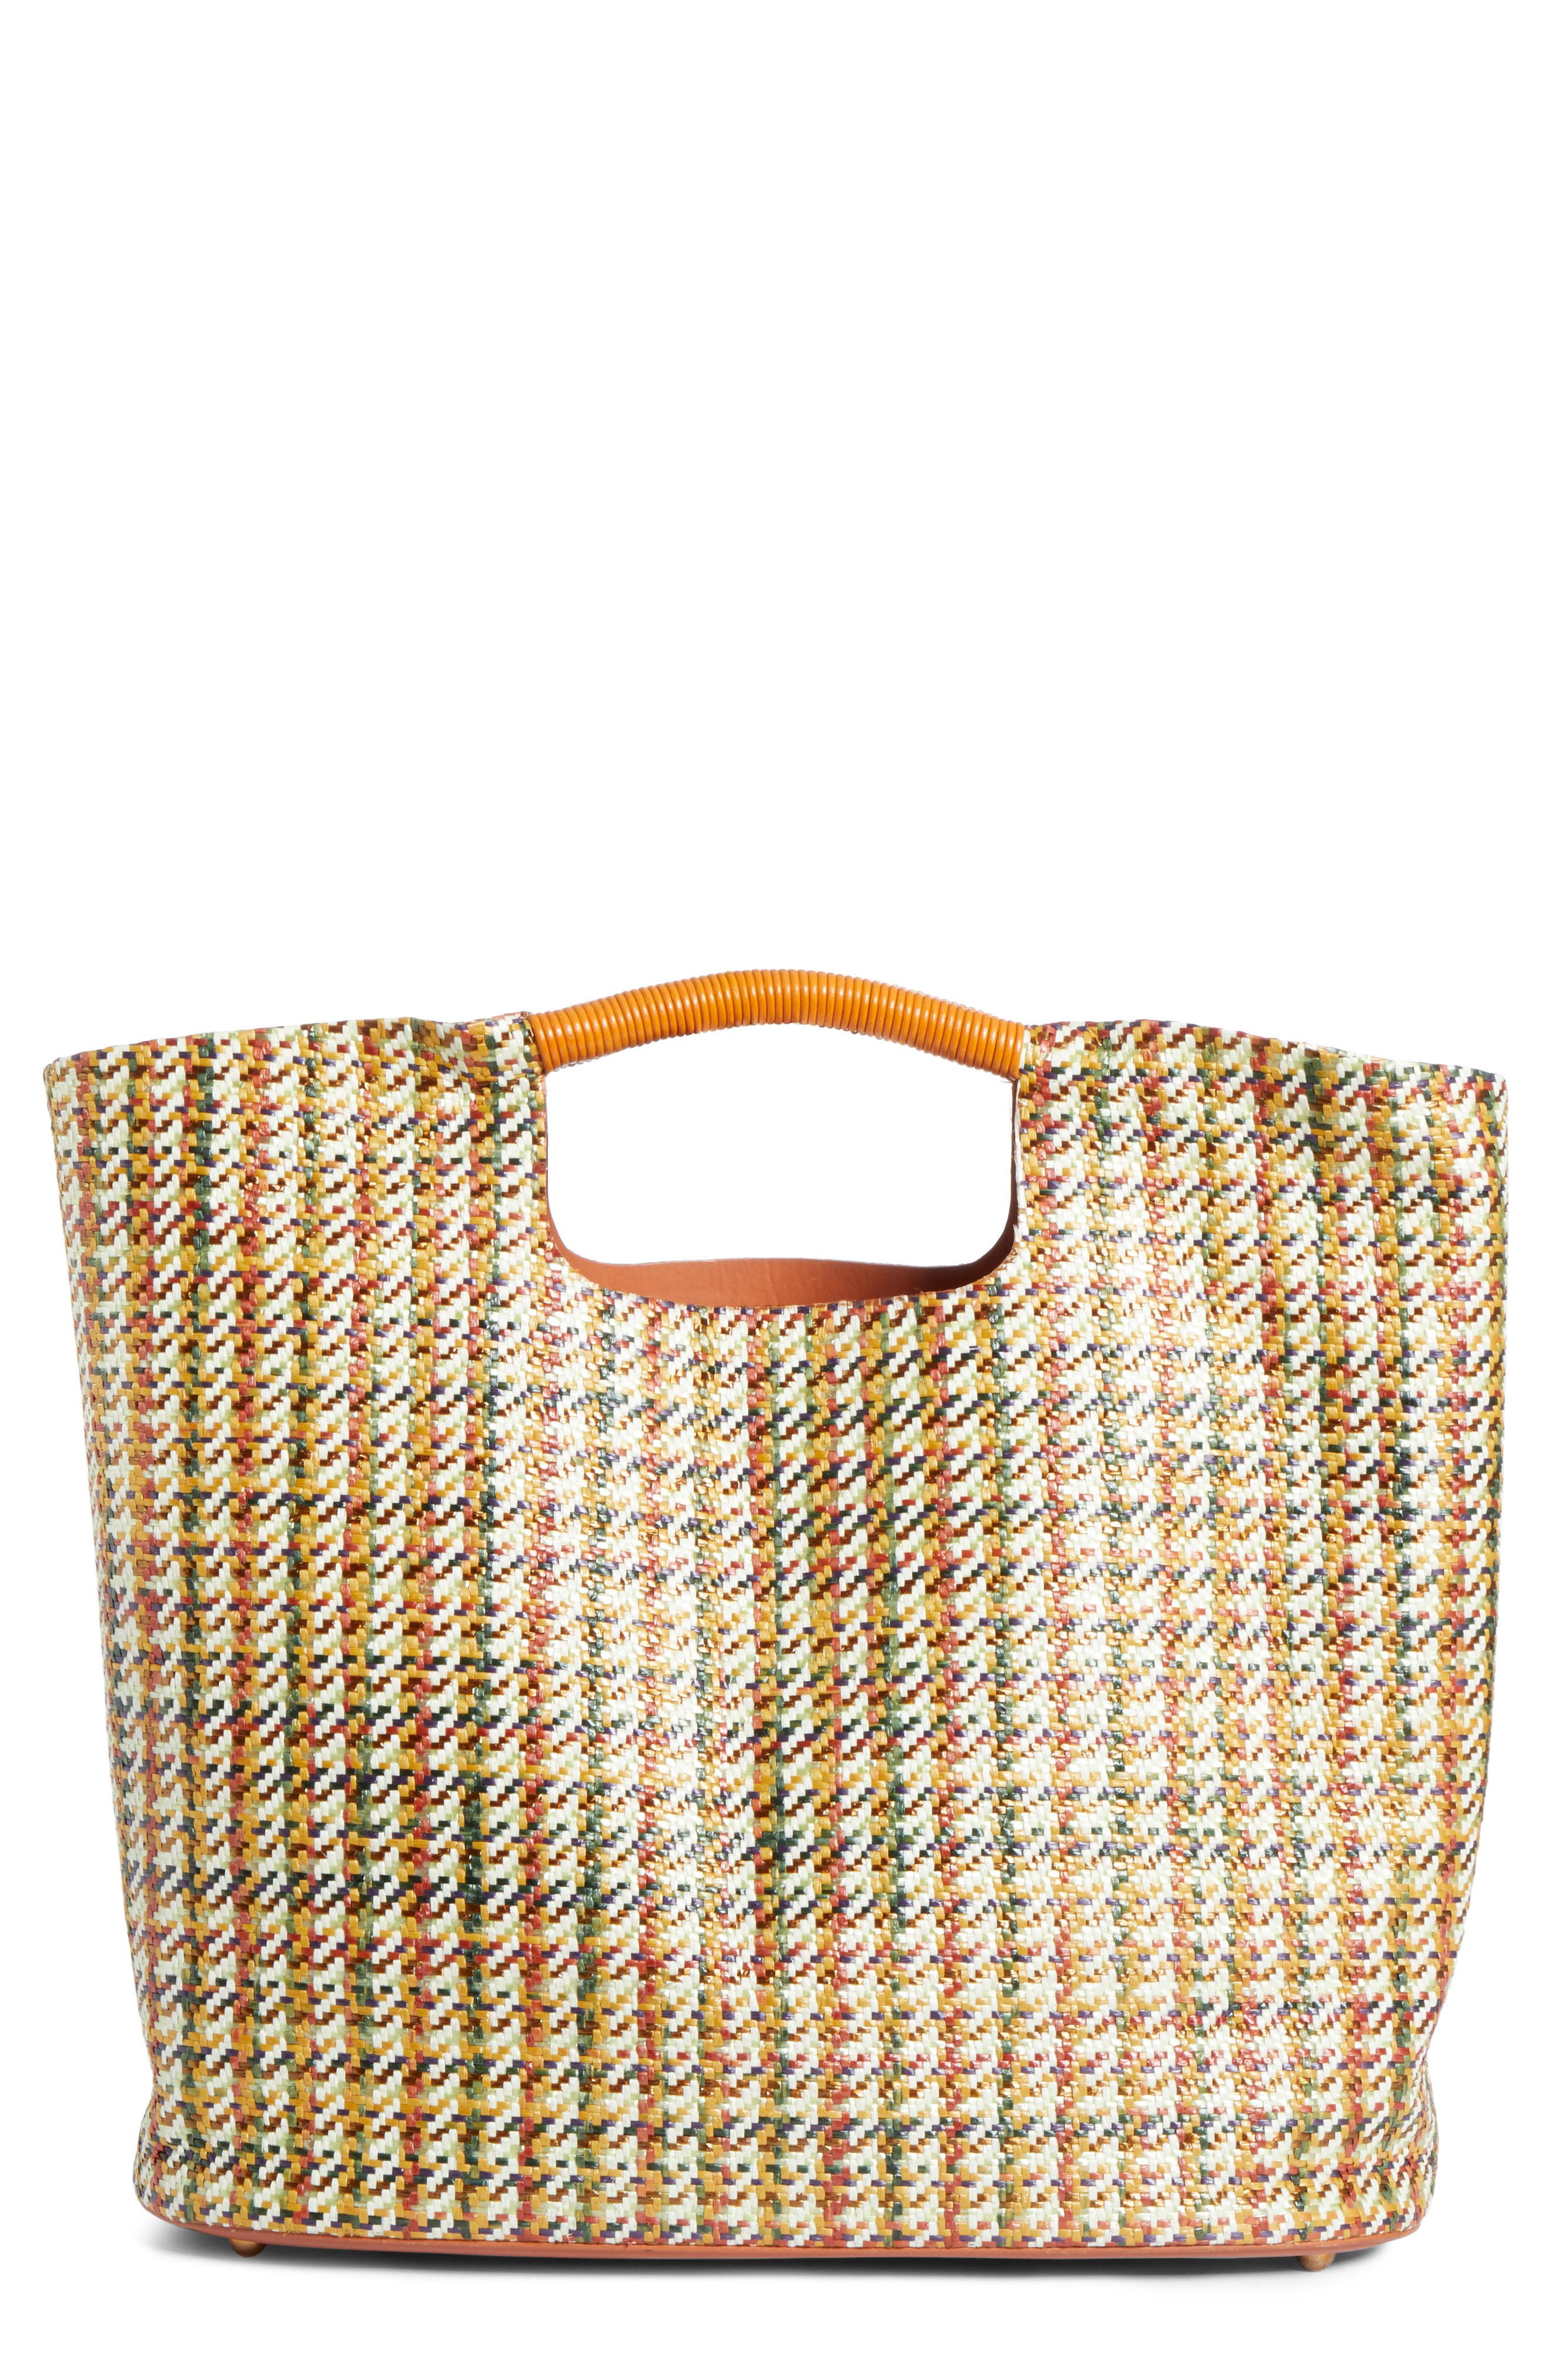 SIMON MILLER Large Birch Houndstooth Tote, Main, color, 200